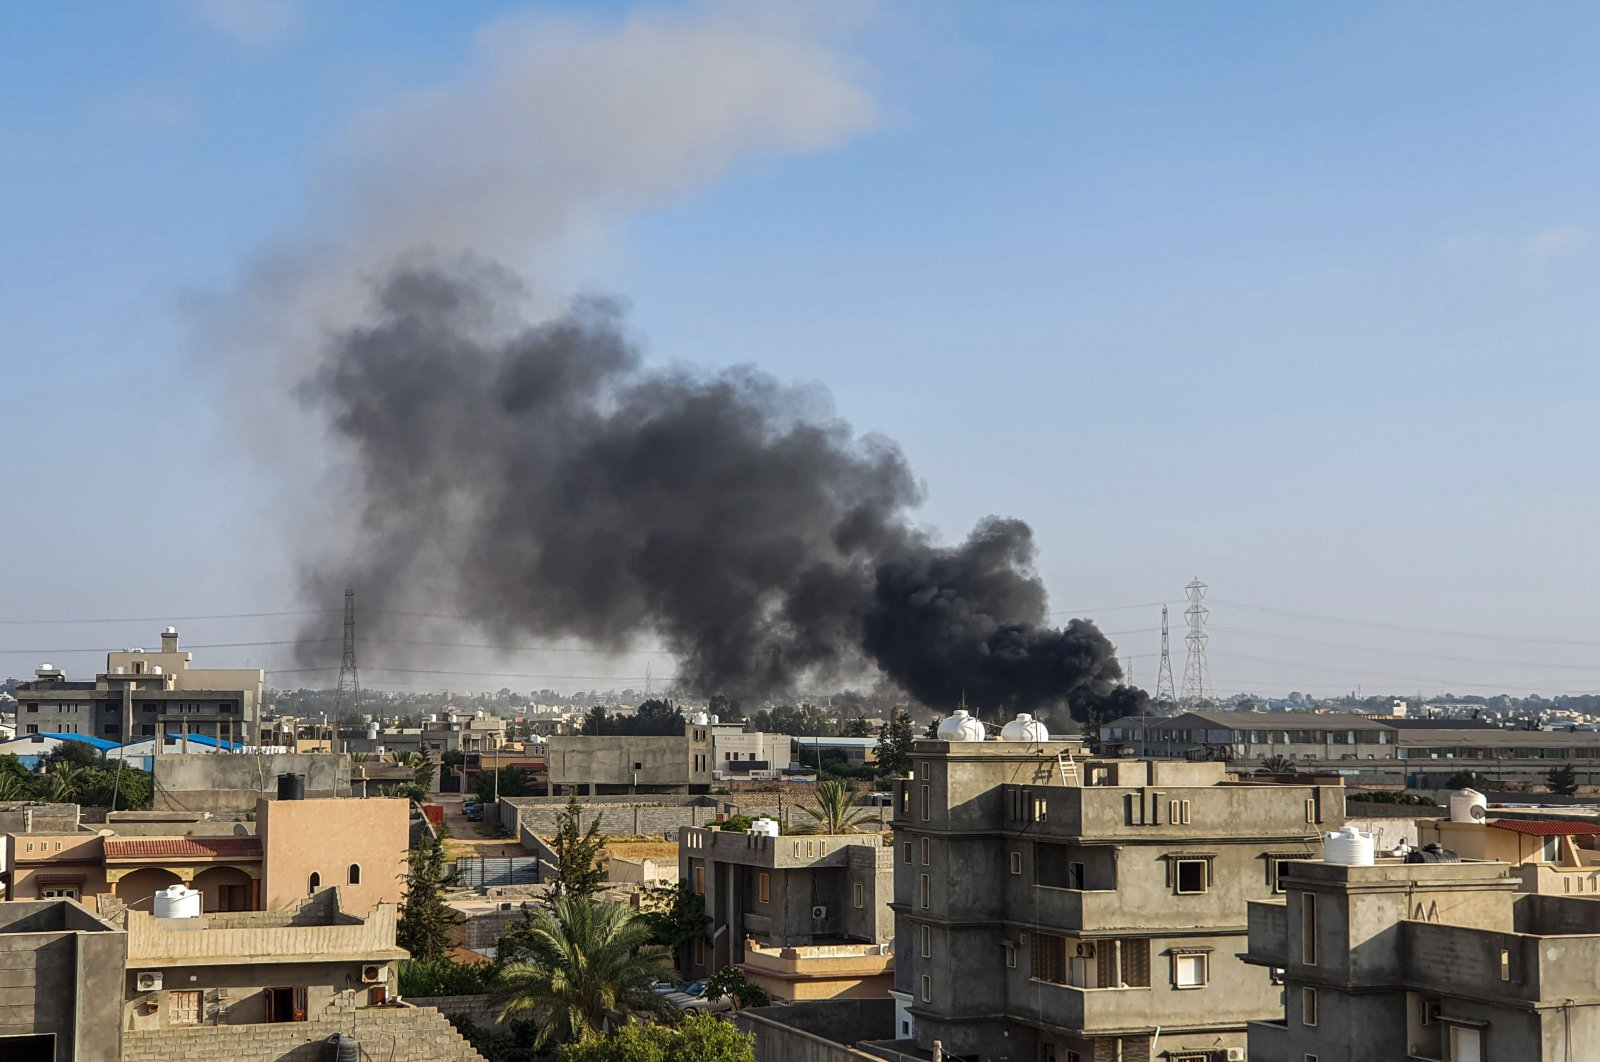 This picture taken on June 29, 2019, shows smoke plumes rising in Tajoura, south of the Libyan capital Tripoli, following a reported airstrike by forces loyal to putschist general Khalifa Haftar. (AFP Photo)